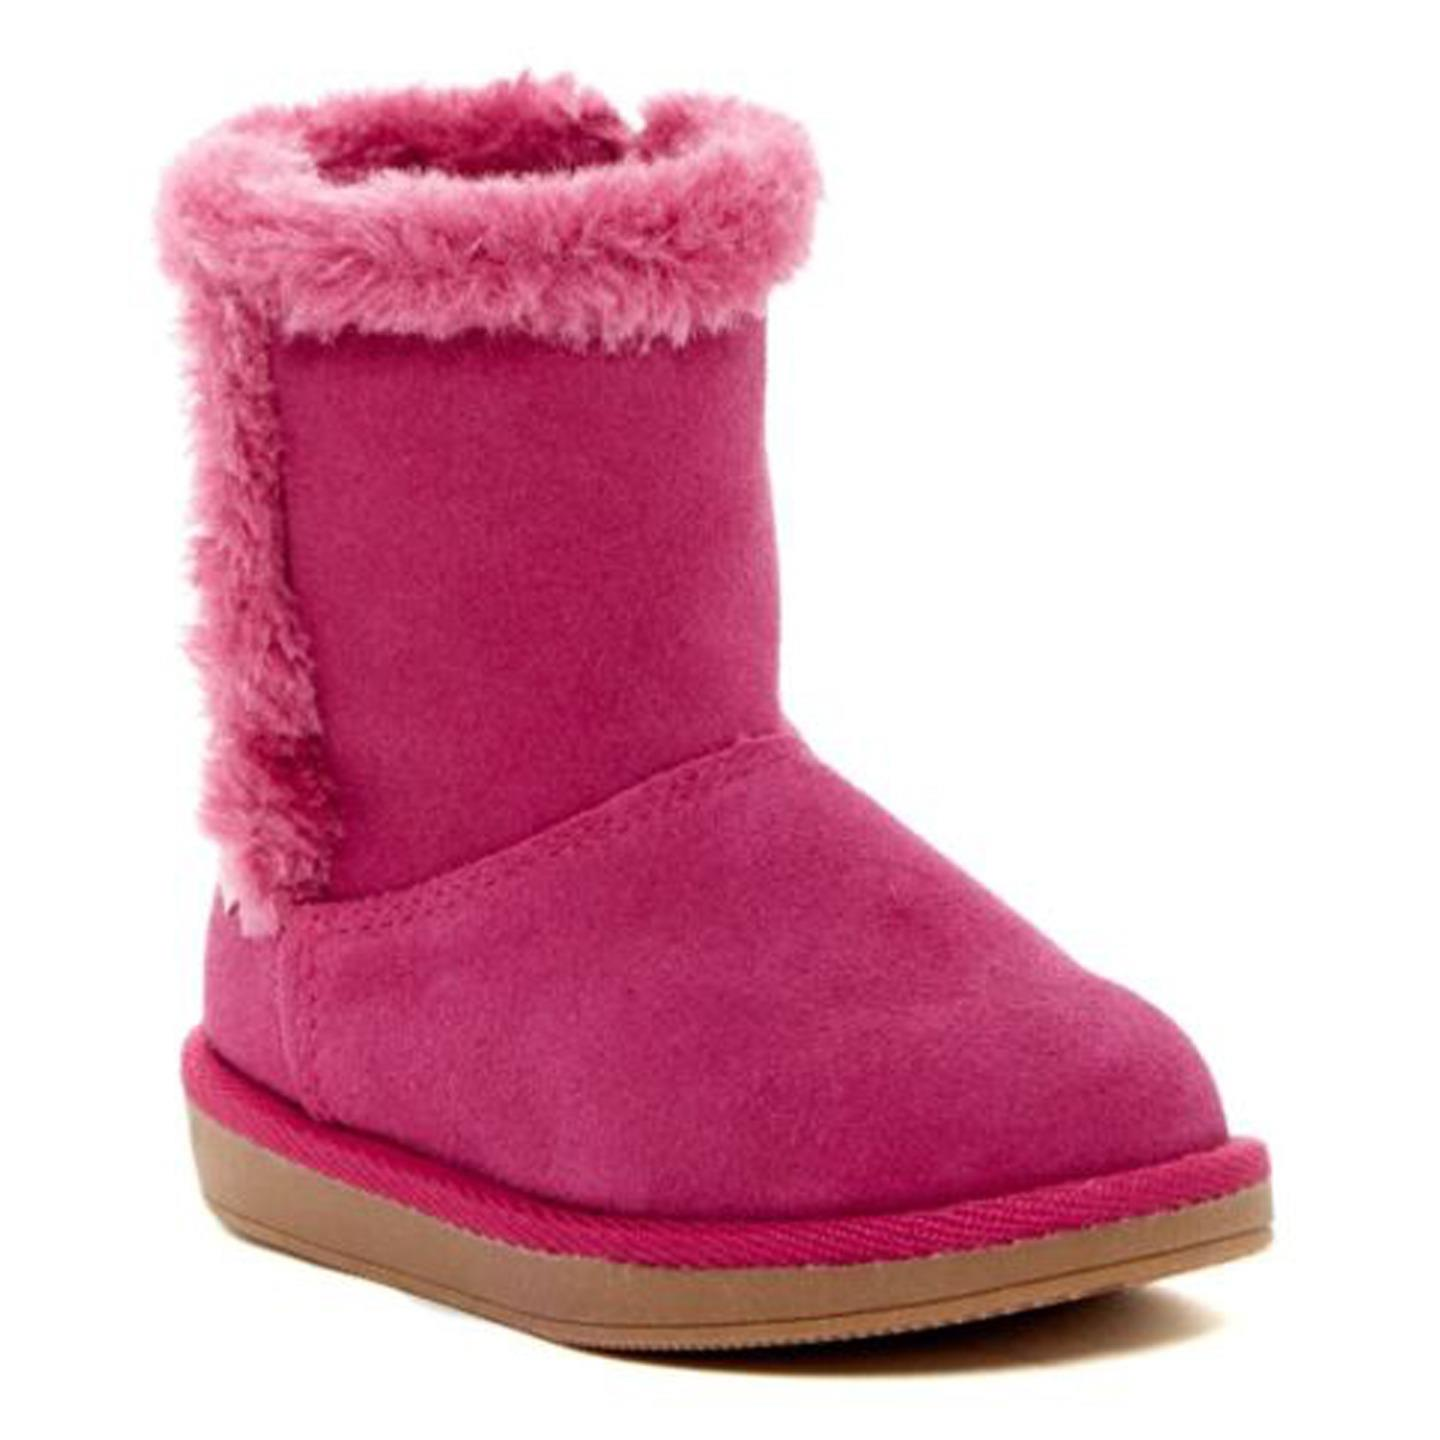 Stride Rite Arabella Girls Boot, Fuchsia (Toddler)5 M by Stride Rite